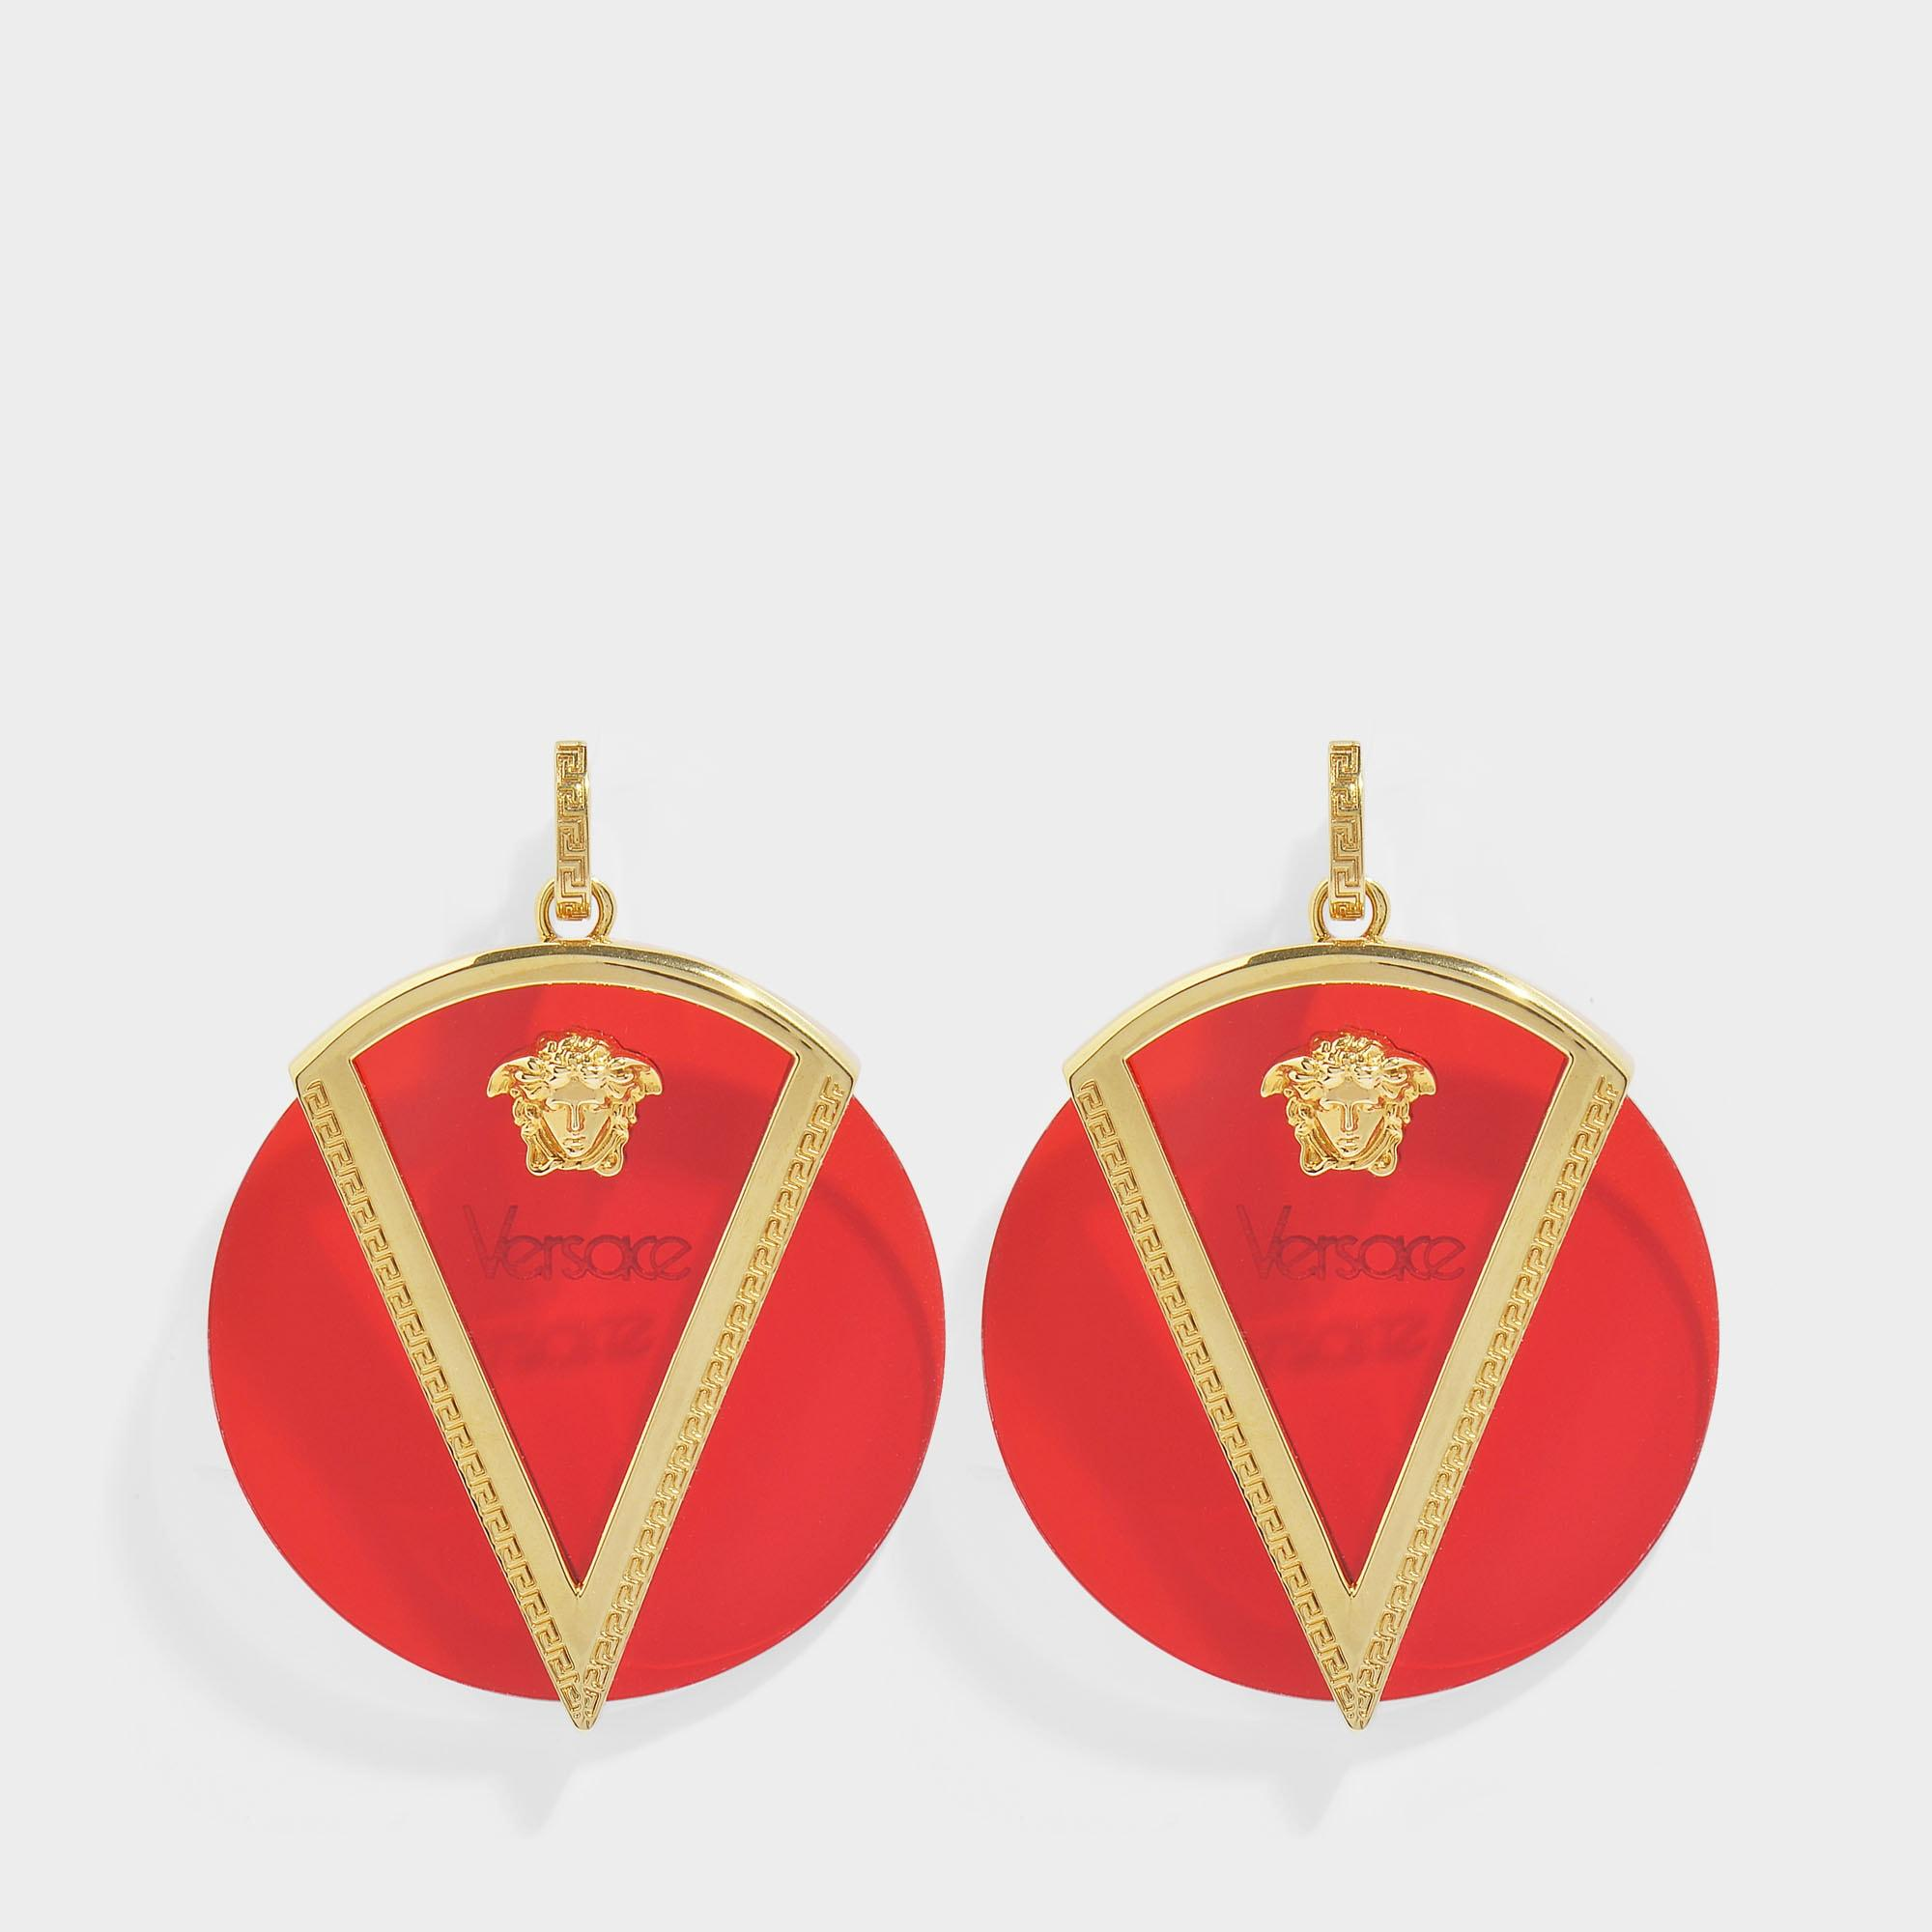 8d6bd7099 Versace Medusa Earrings In Red Resin And Gold Metal in Red - Lyst